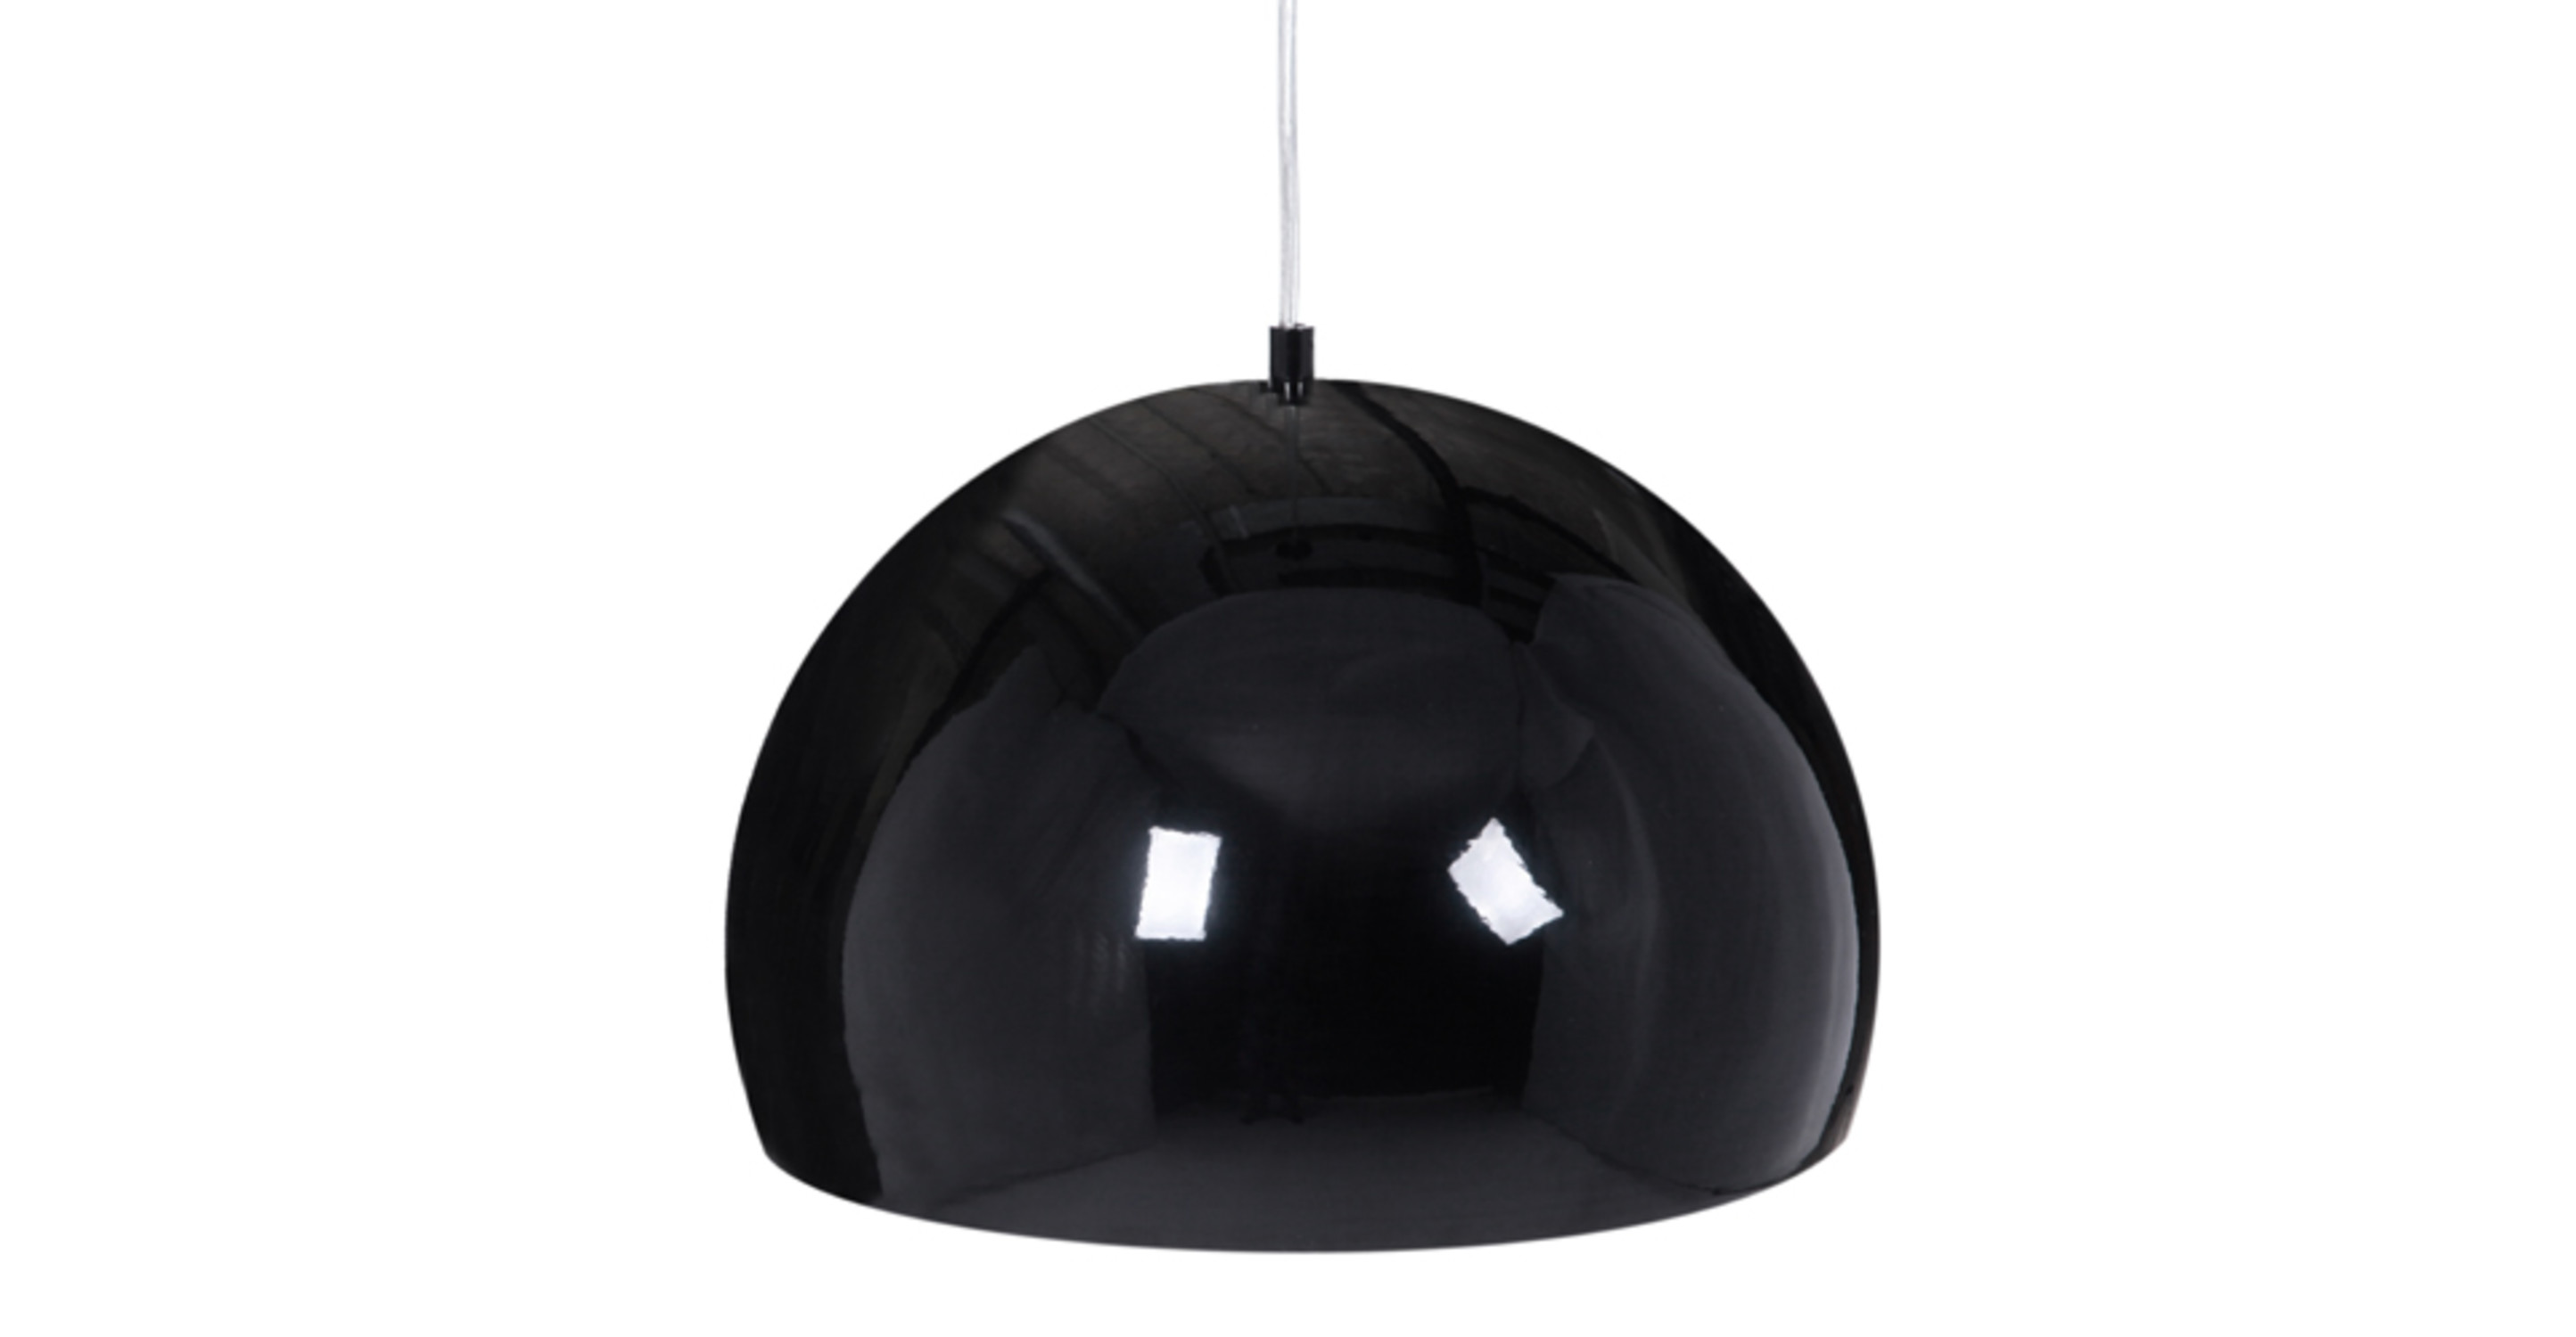 Boule suspension noir et aluminium for Suspension boule noire